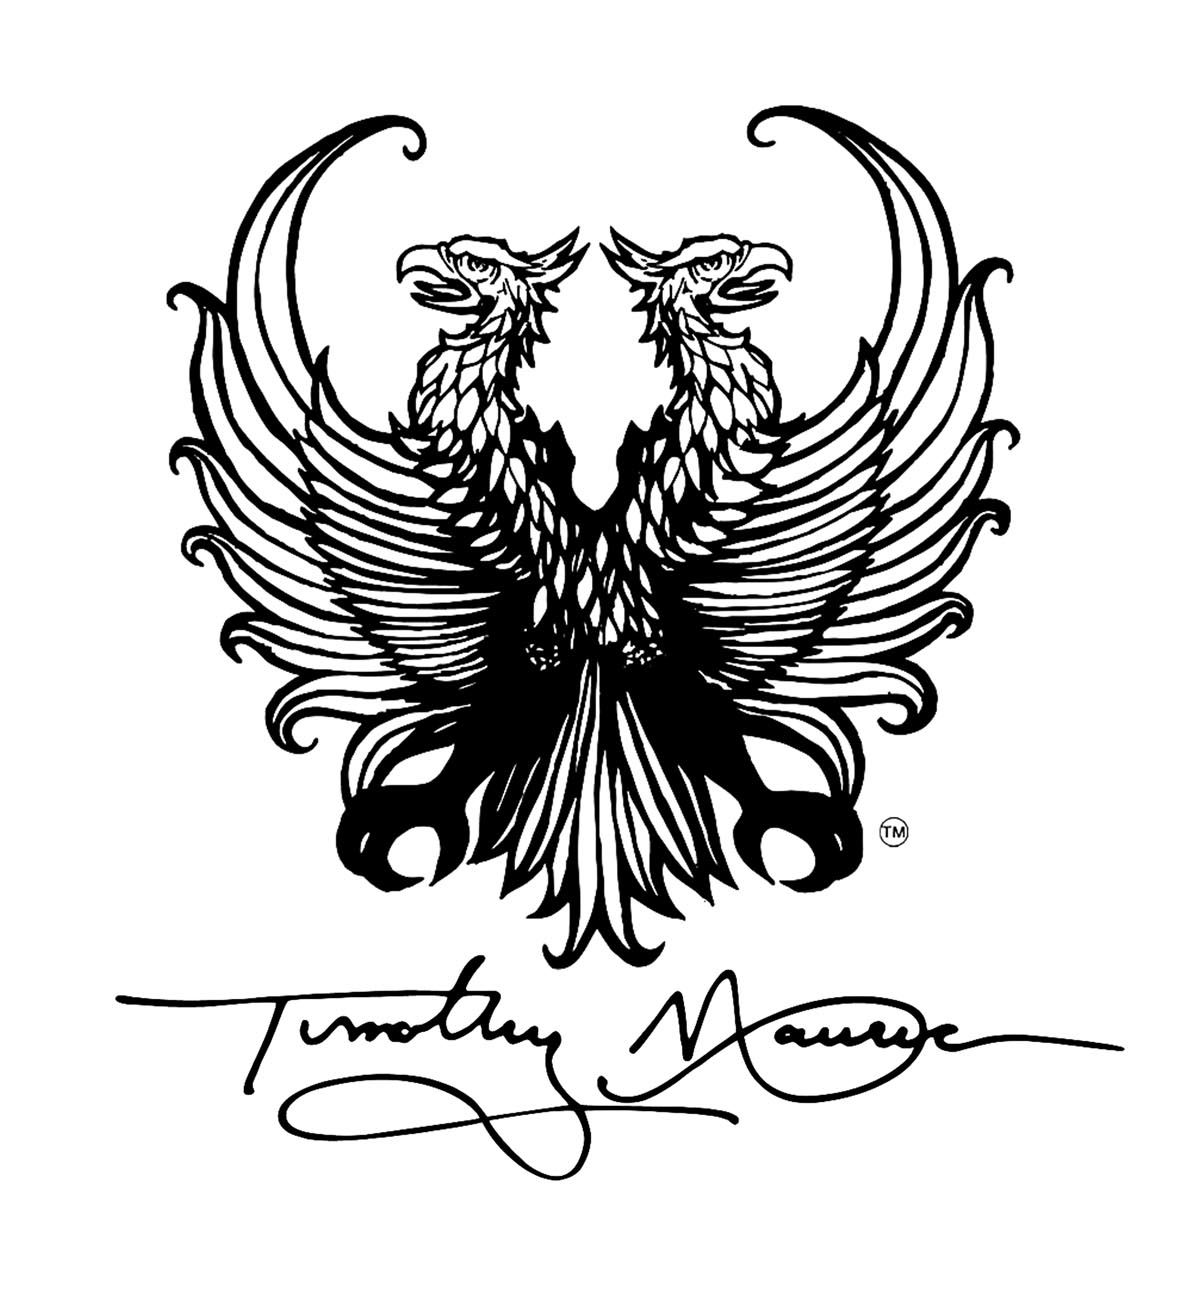 Timothy Maurice Clothing